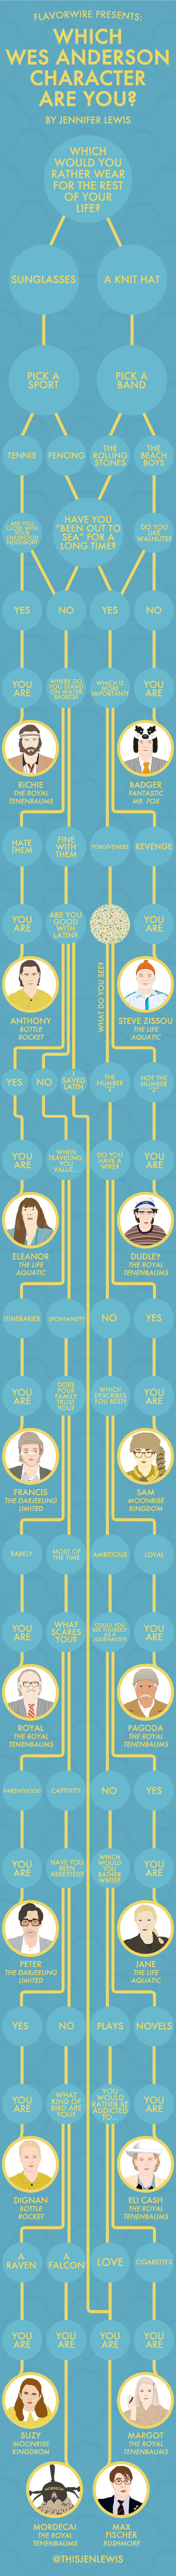 Wes Anderson Character Infographic